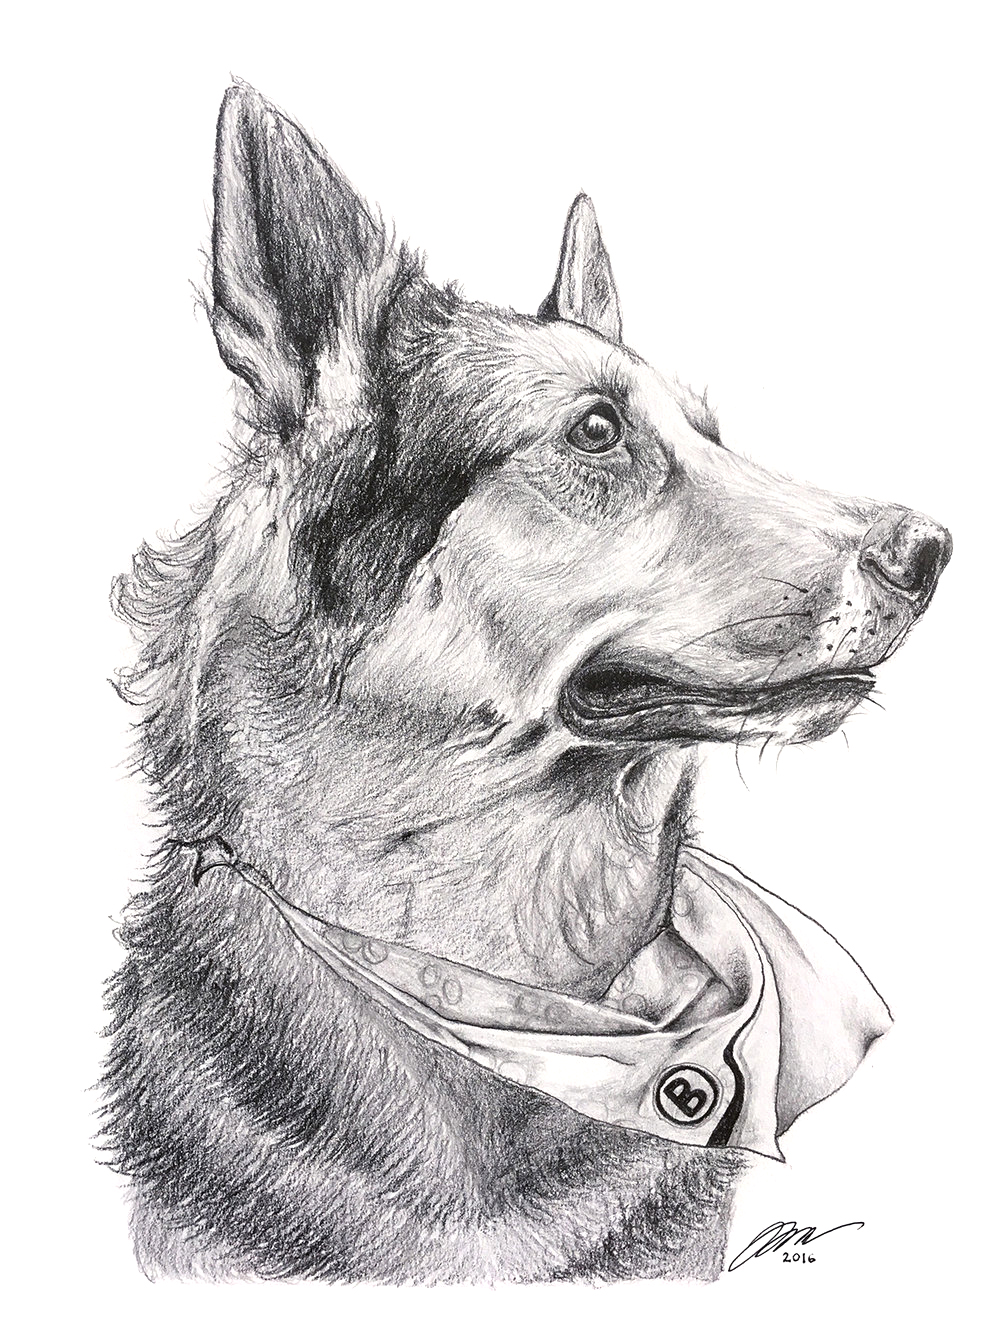 German Shepherd by LK Weiss